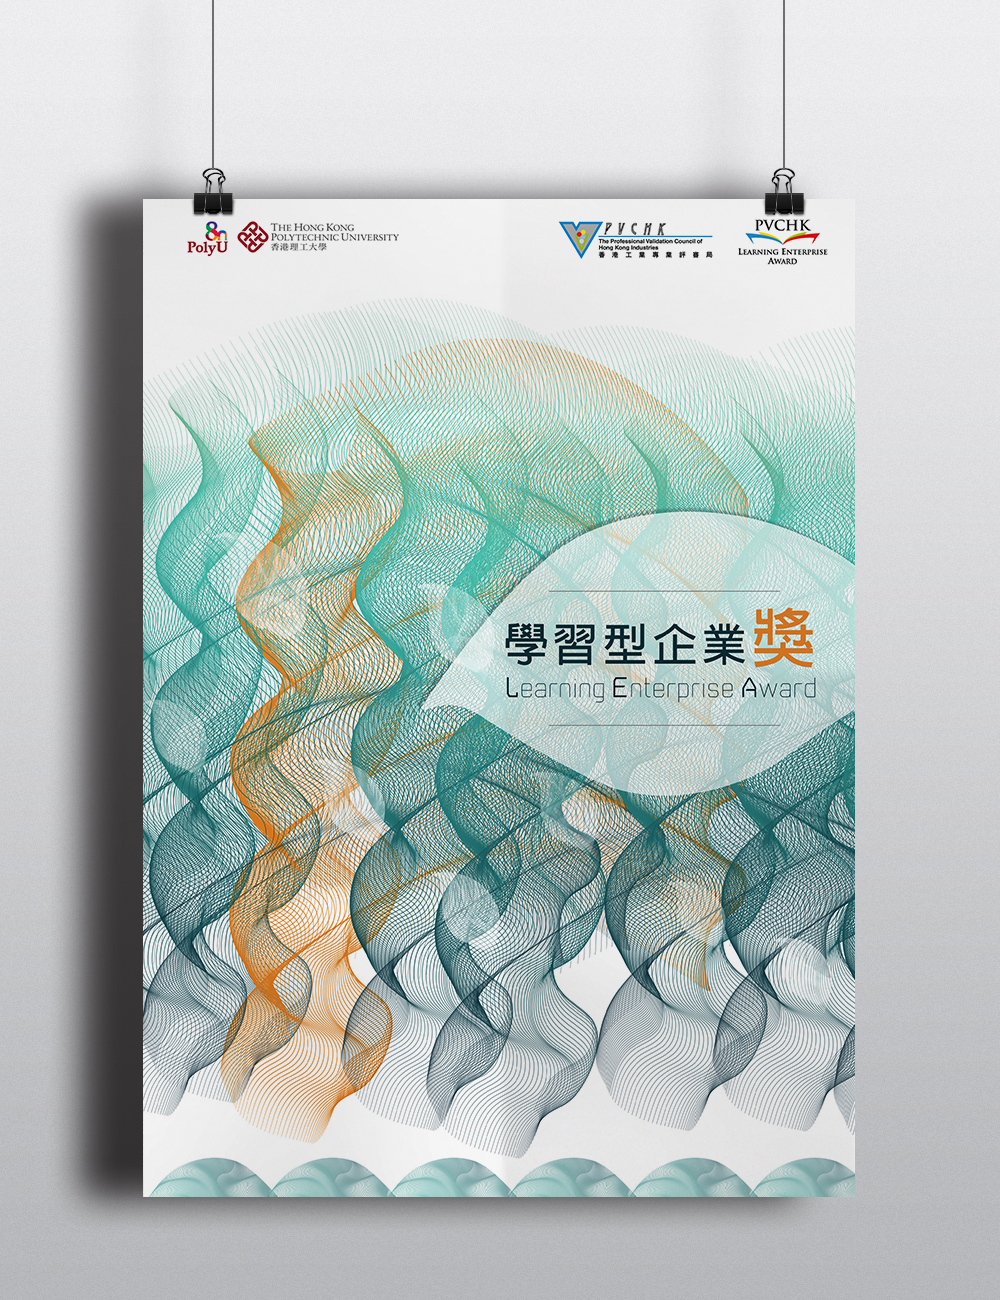 Flyer Design for PolyU LEA